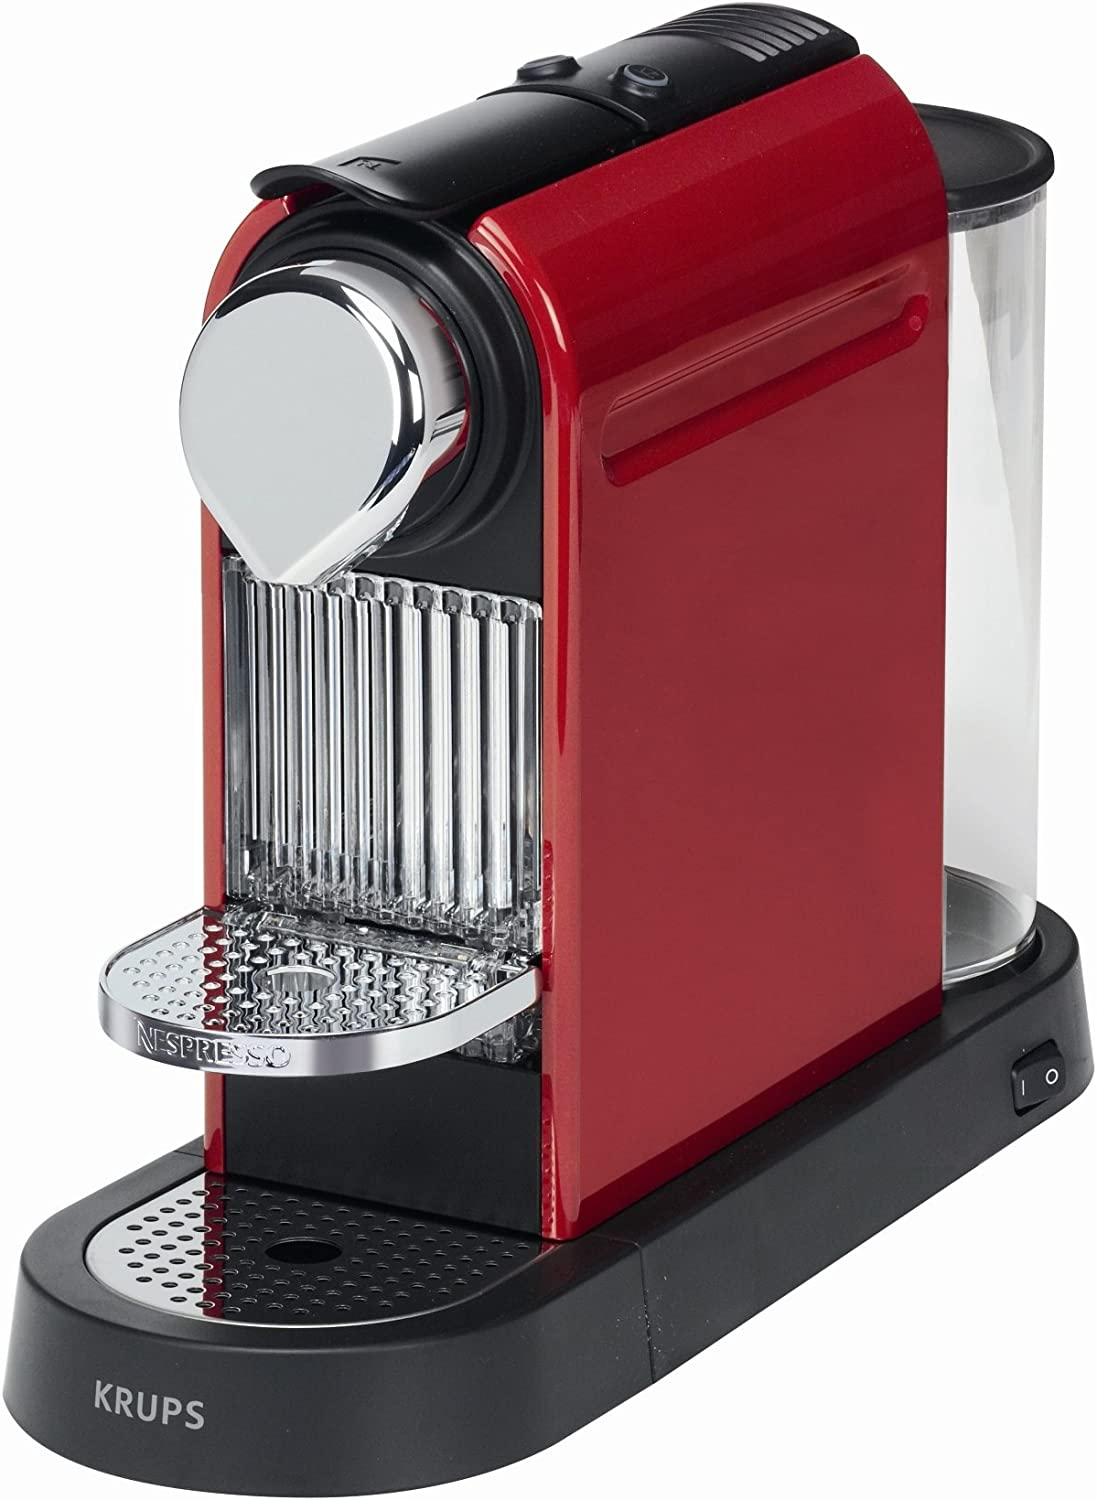 Krups Citiz - Cafetera Nespresso, 1260 W, color rojo: Amazon.es: Hogar